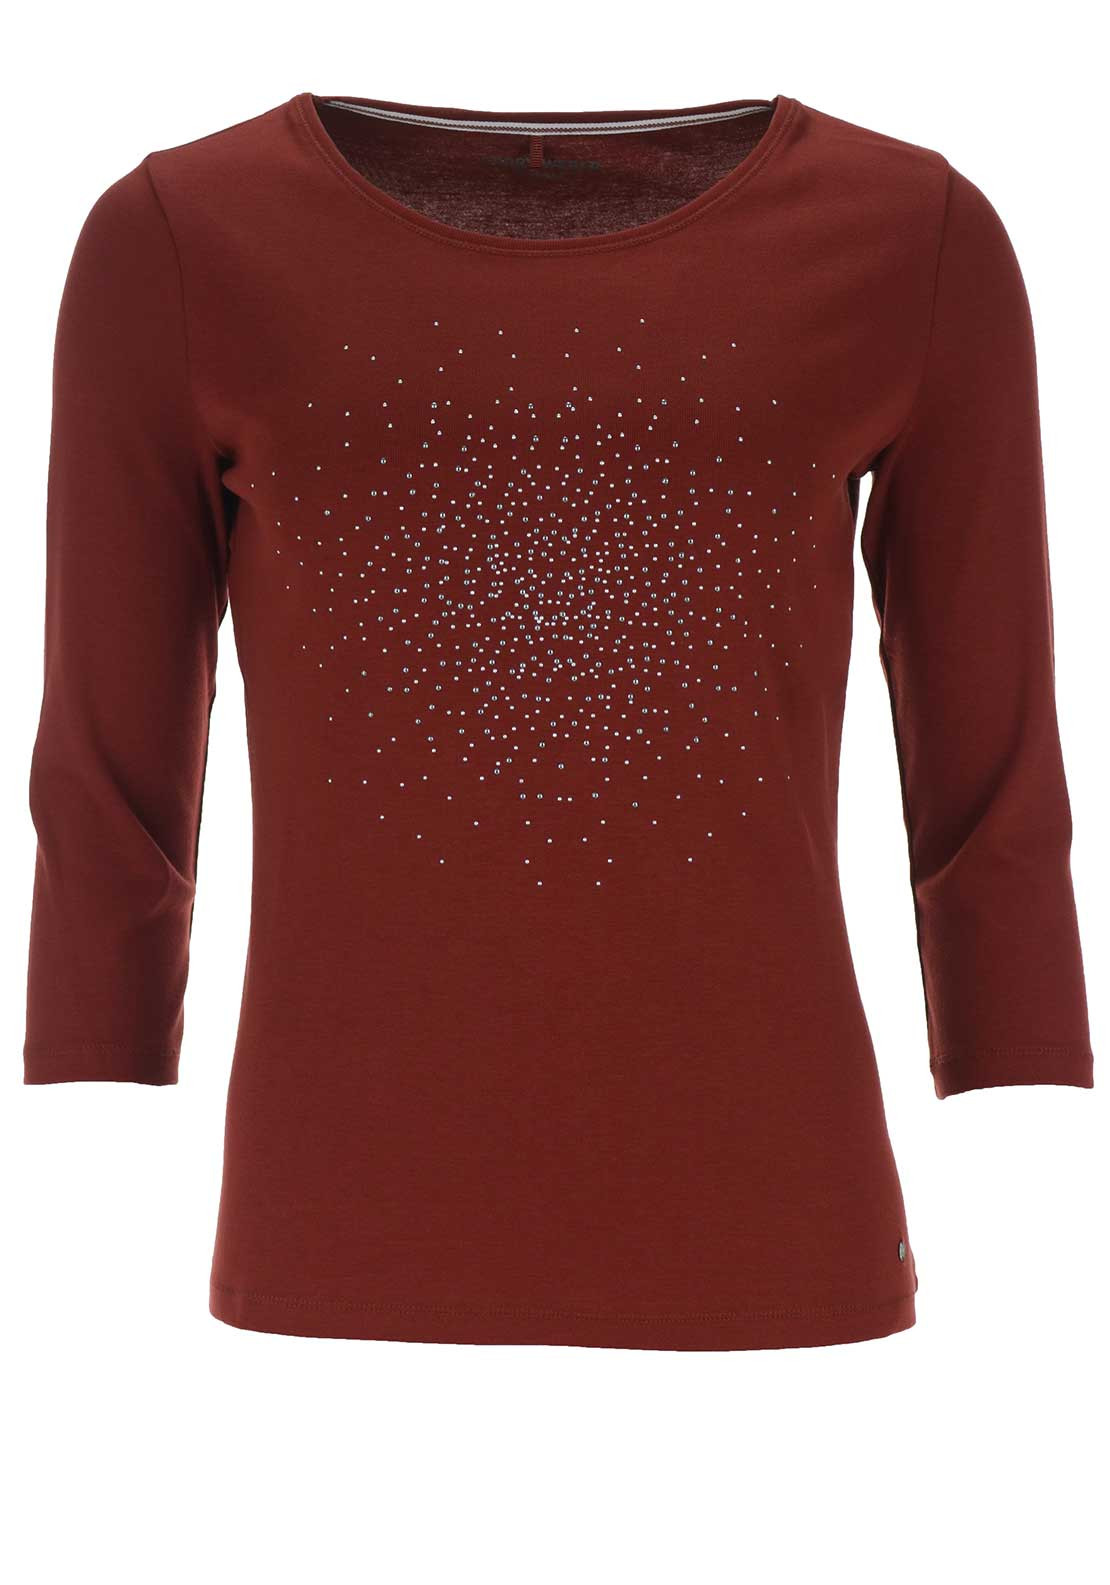 Gerry Weber Embellished Cropped Sleeve Top, Rust